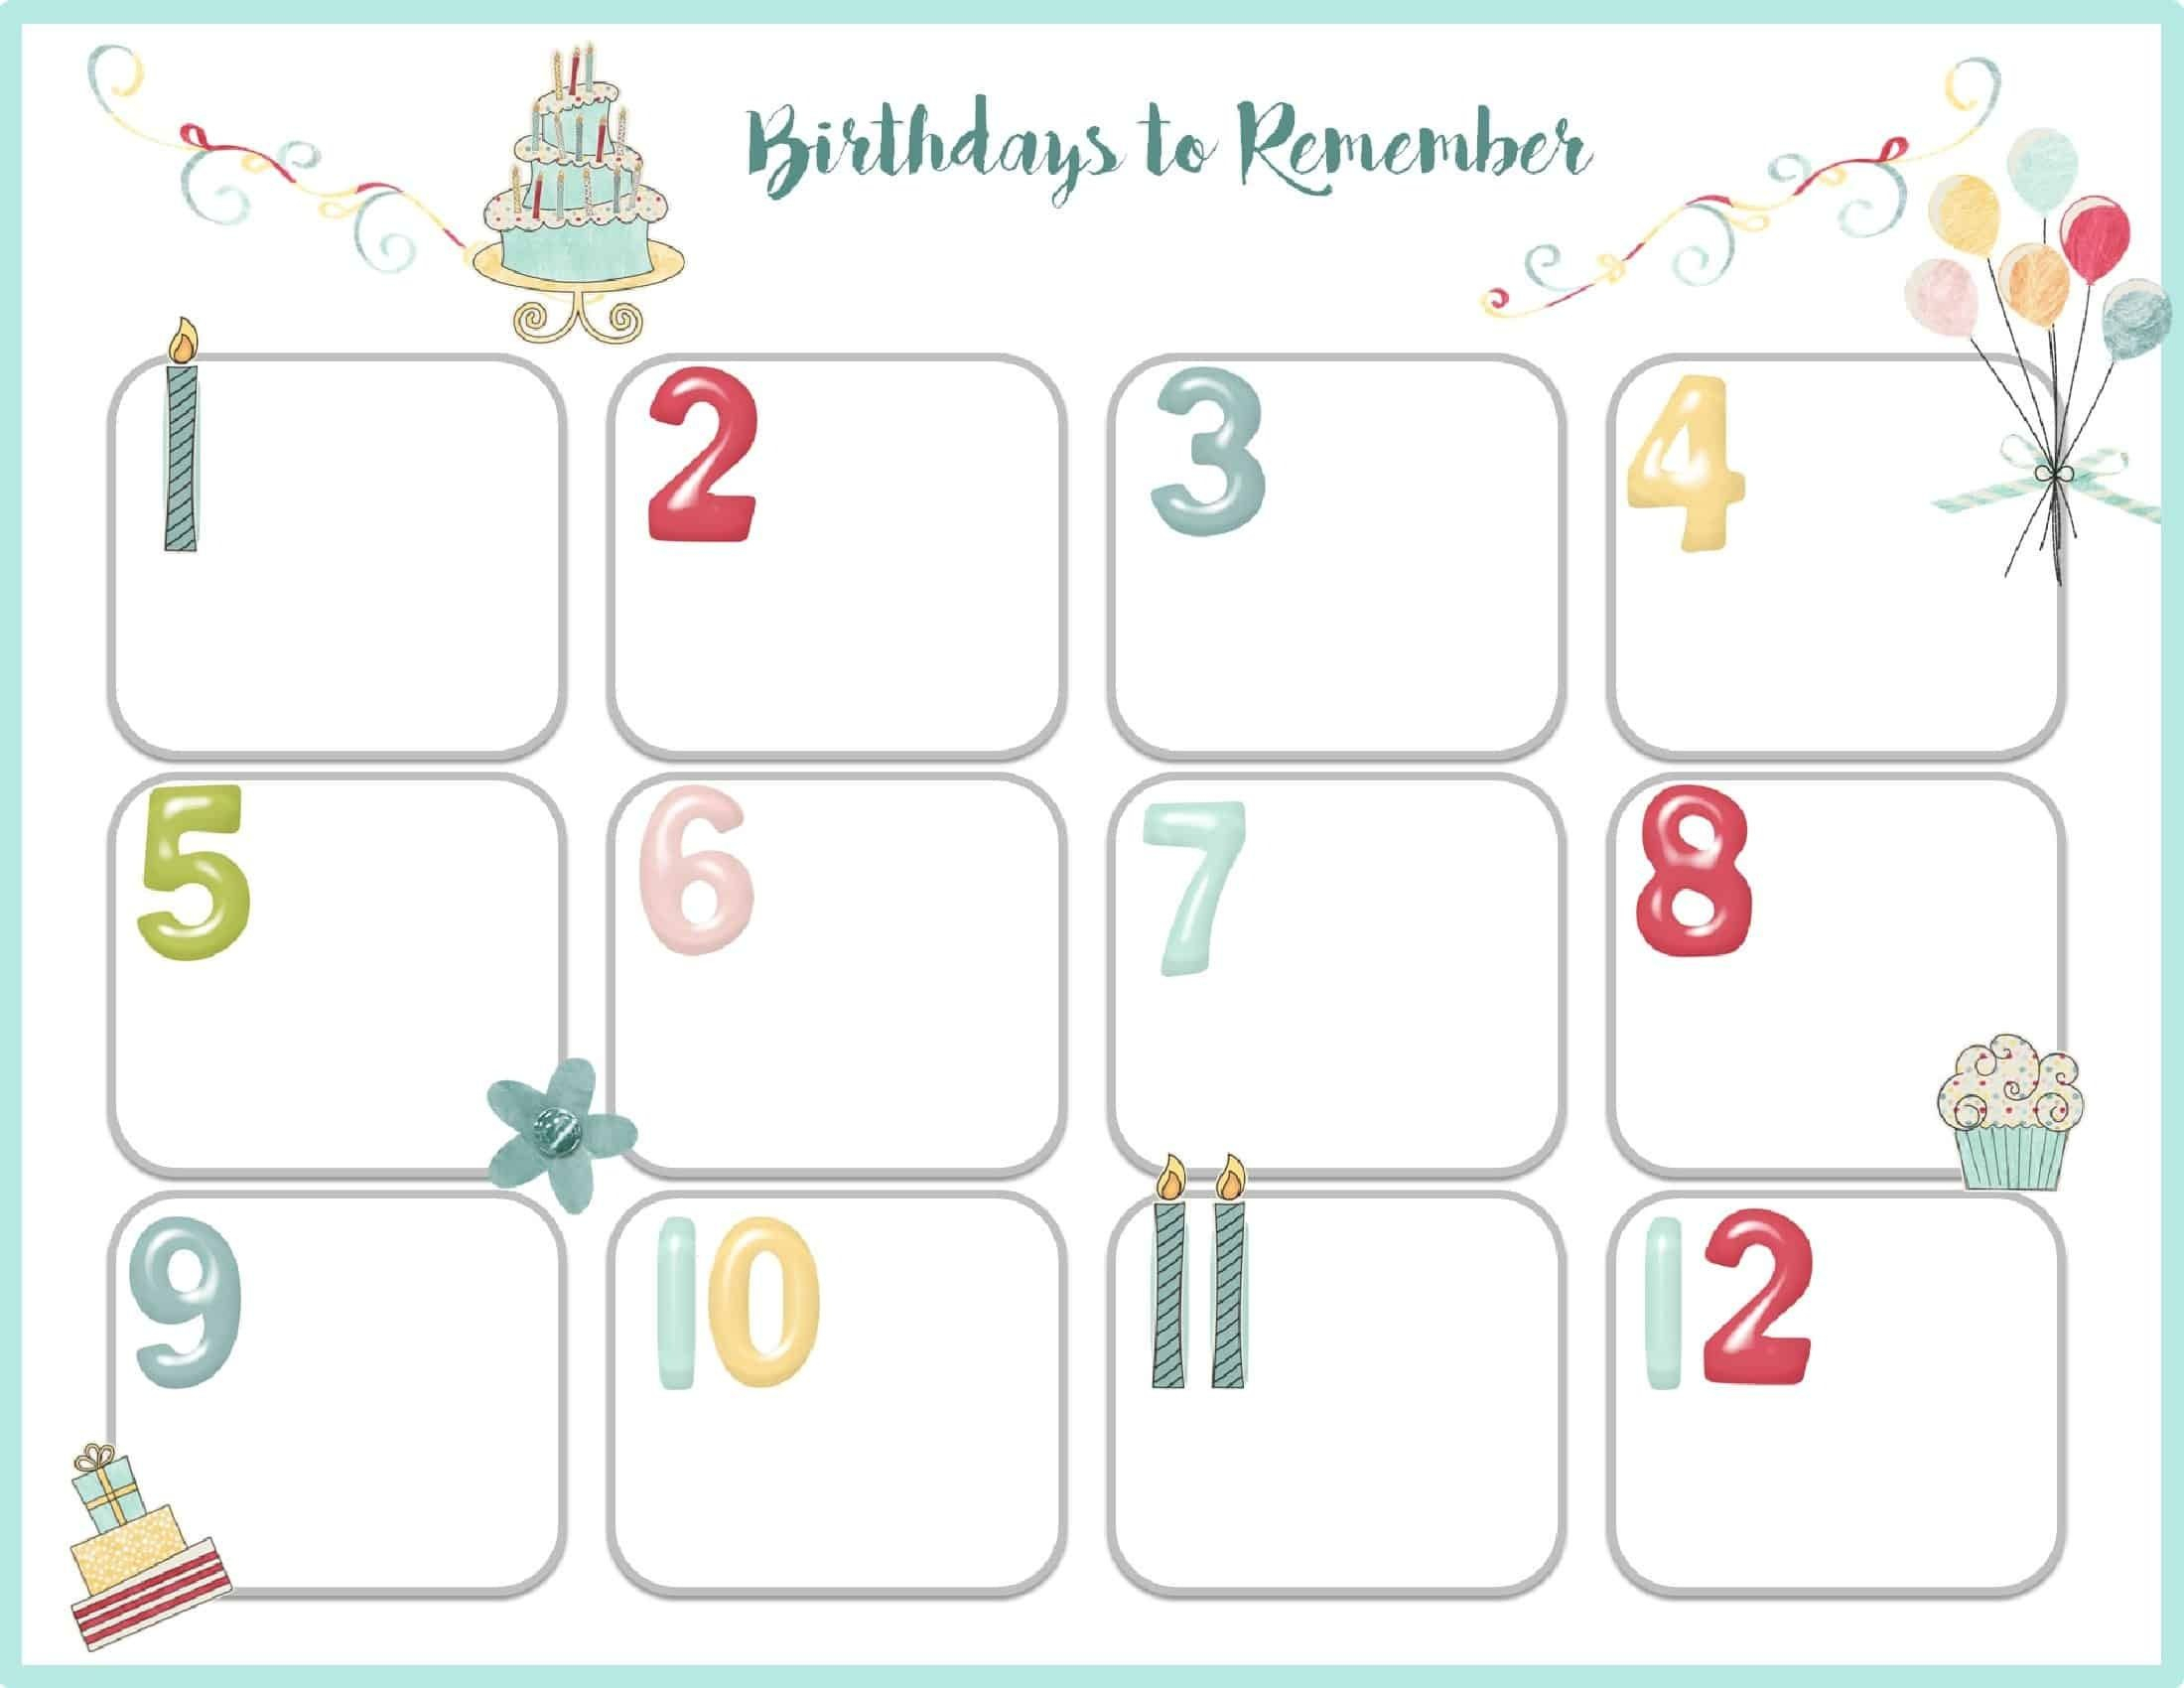 Birthday Calendar Template Printable Events | Birthday within Blank Birthday Calendar Template